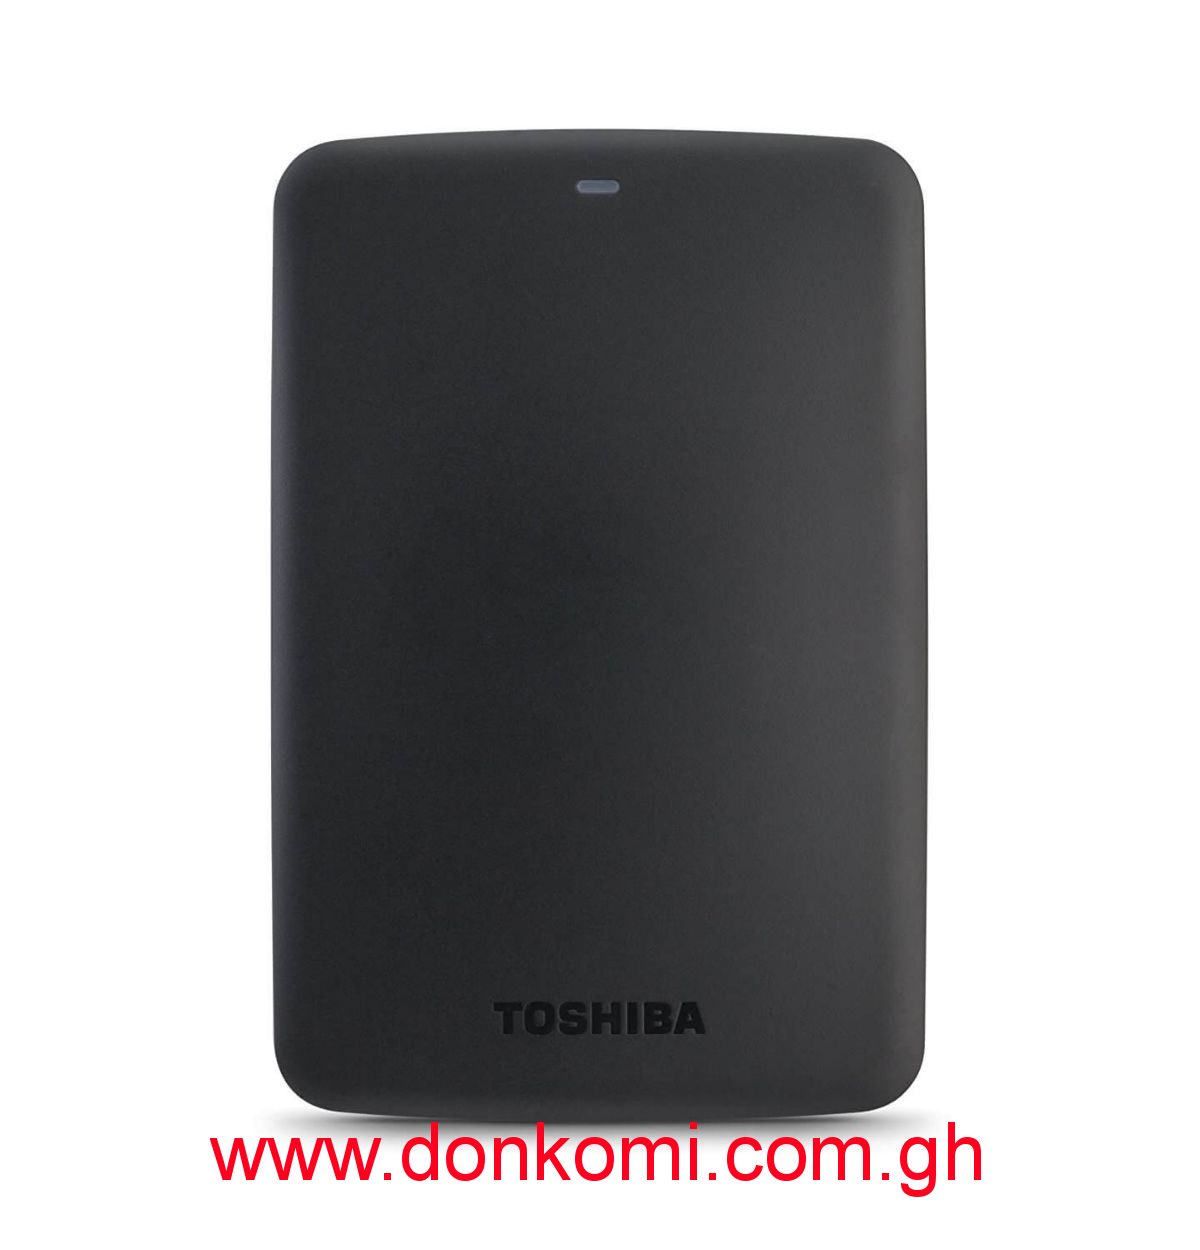 3TB TOSHIBA CANVIO EXTERNAL HARD DRIVE